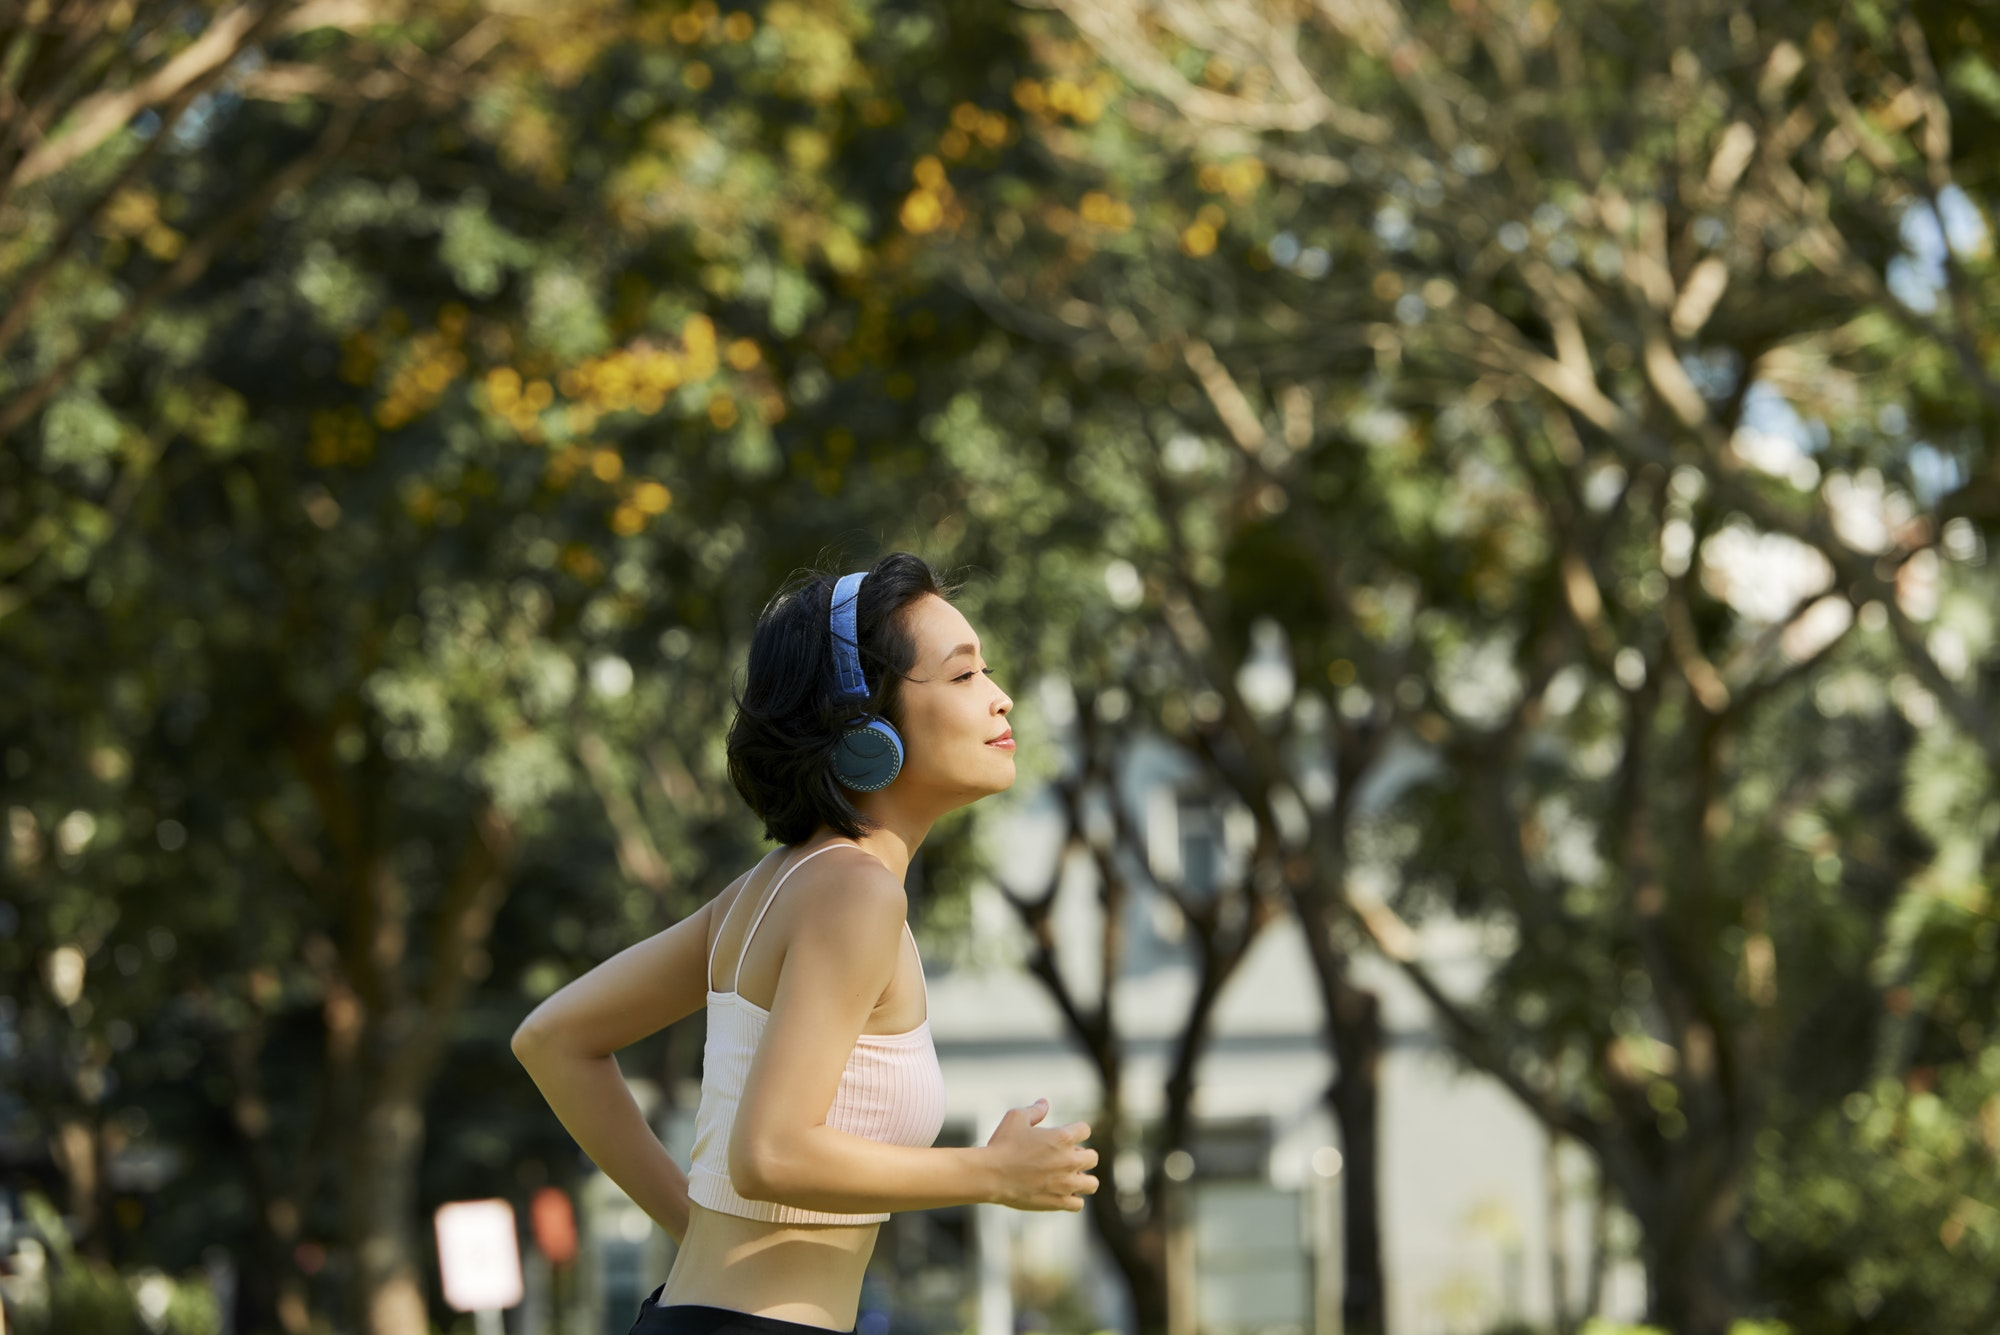 Fit woman jogging in park